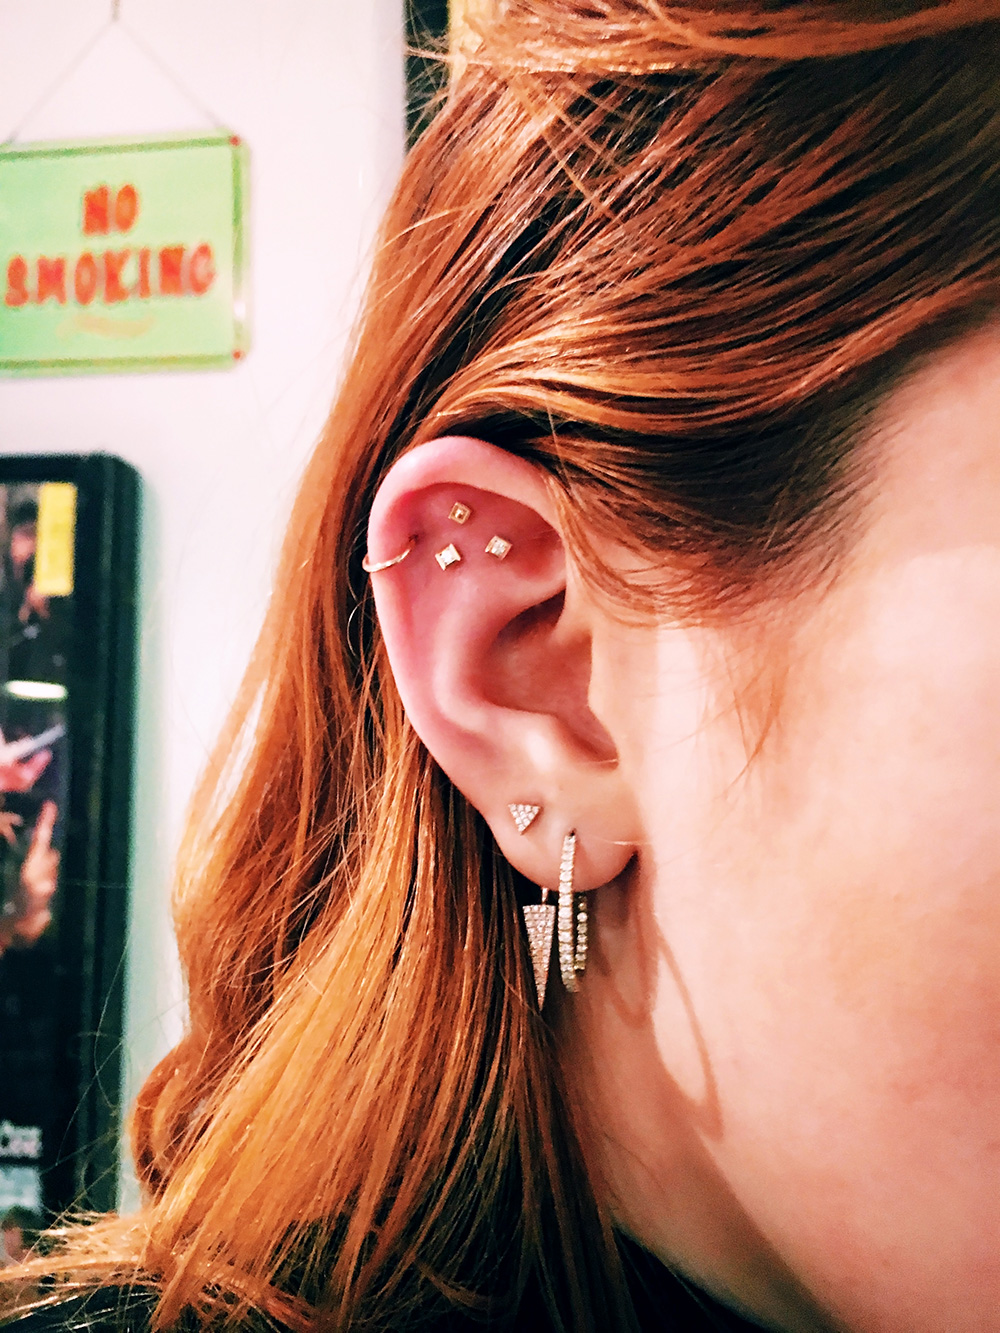 Bella-Thorne-s-ear-piercings-are-so-cool-and-modern-we-definitely-want-to-copy-wallpaper-wp3003623